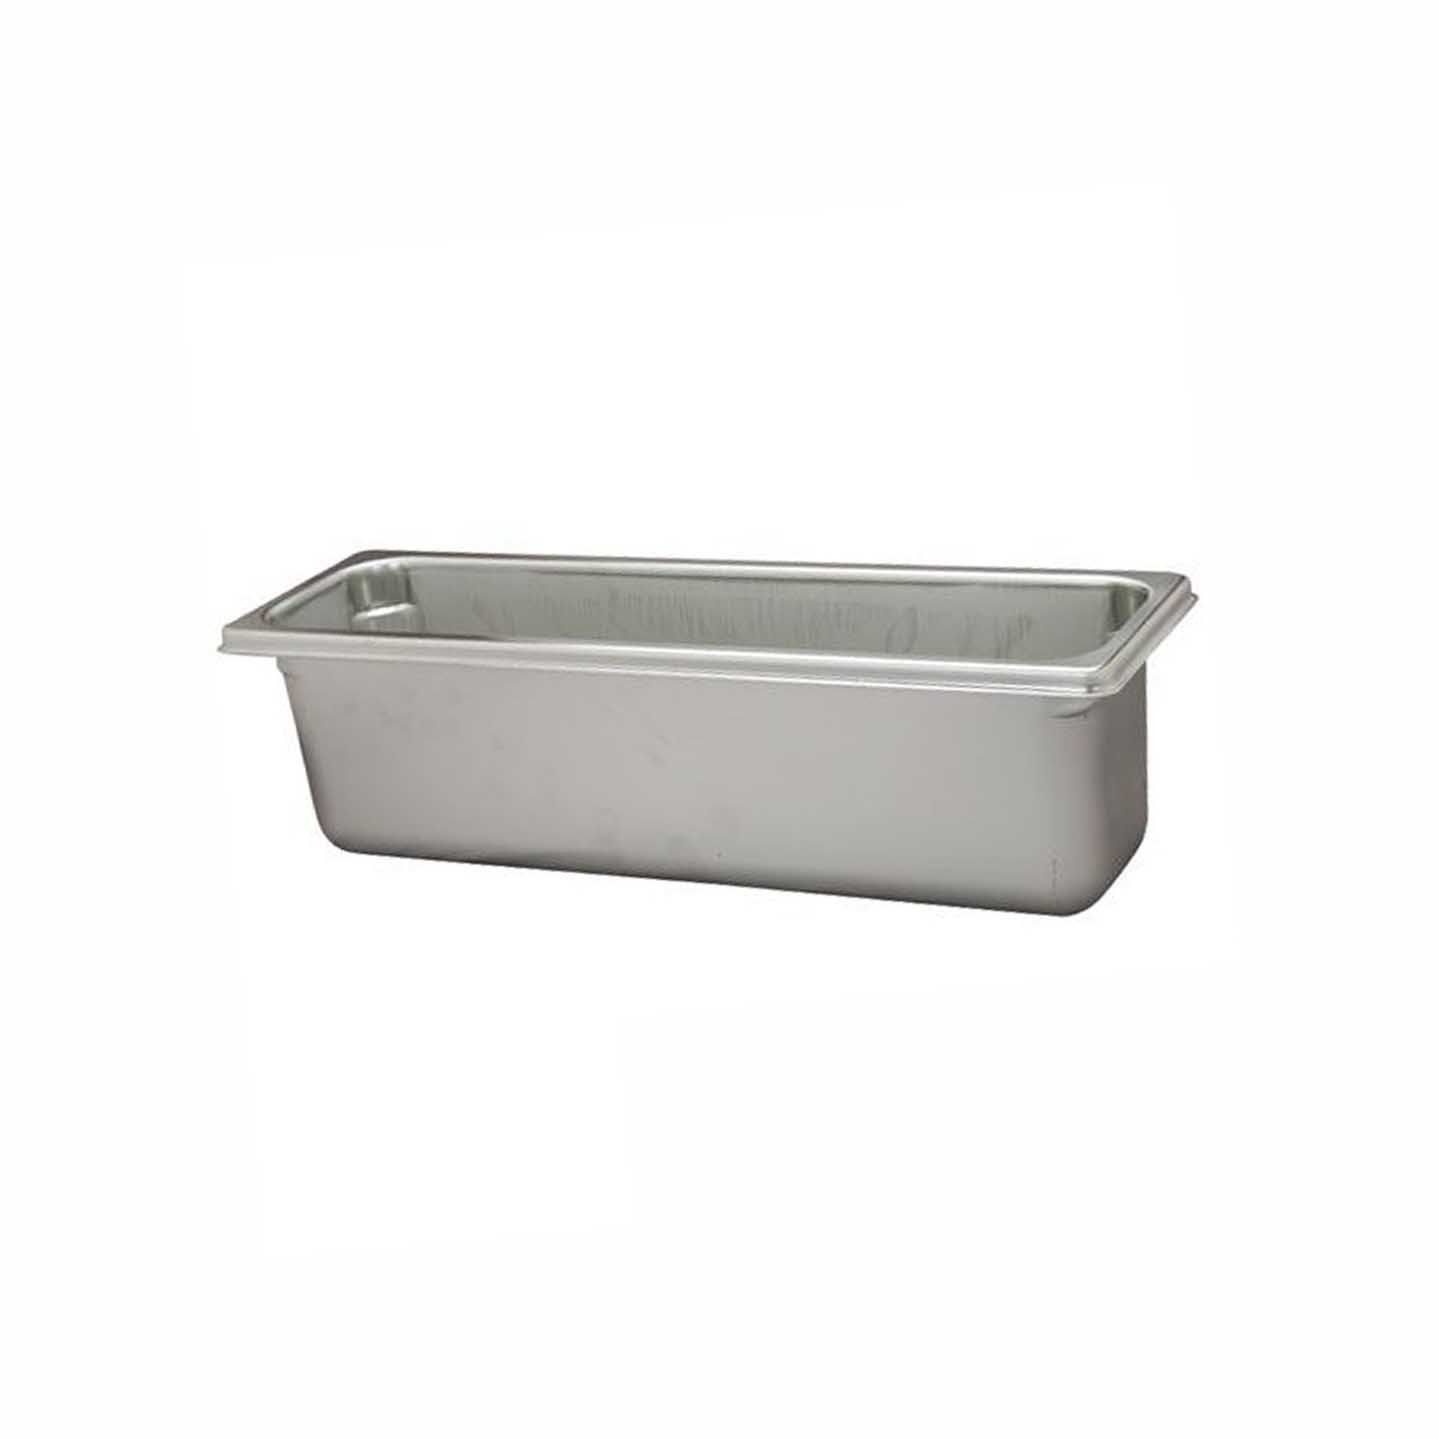 Paderno World Cuisine 12 3/4 inches by 7 1/8 inches Stainless-steel Hotel Pan - 1/3 (depth: 2 1/2 inches)